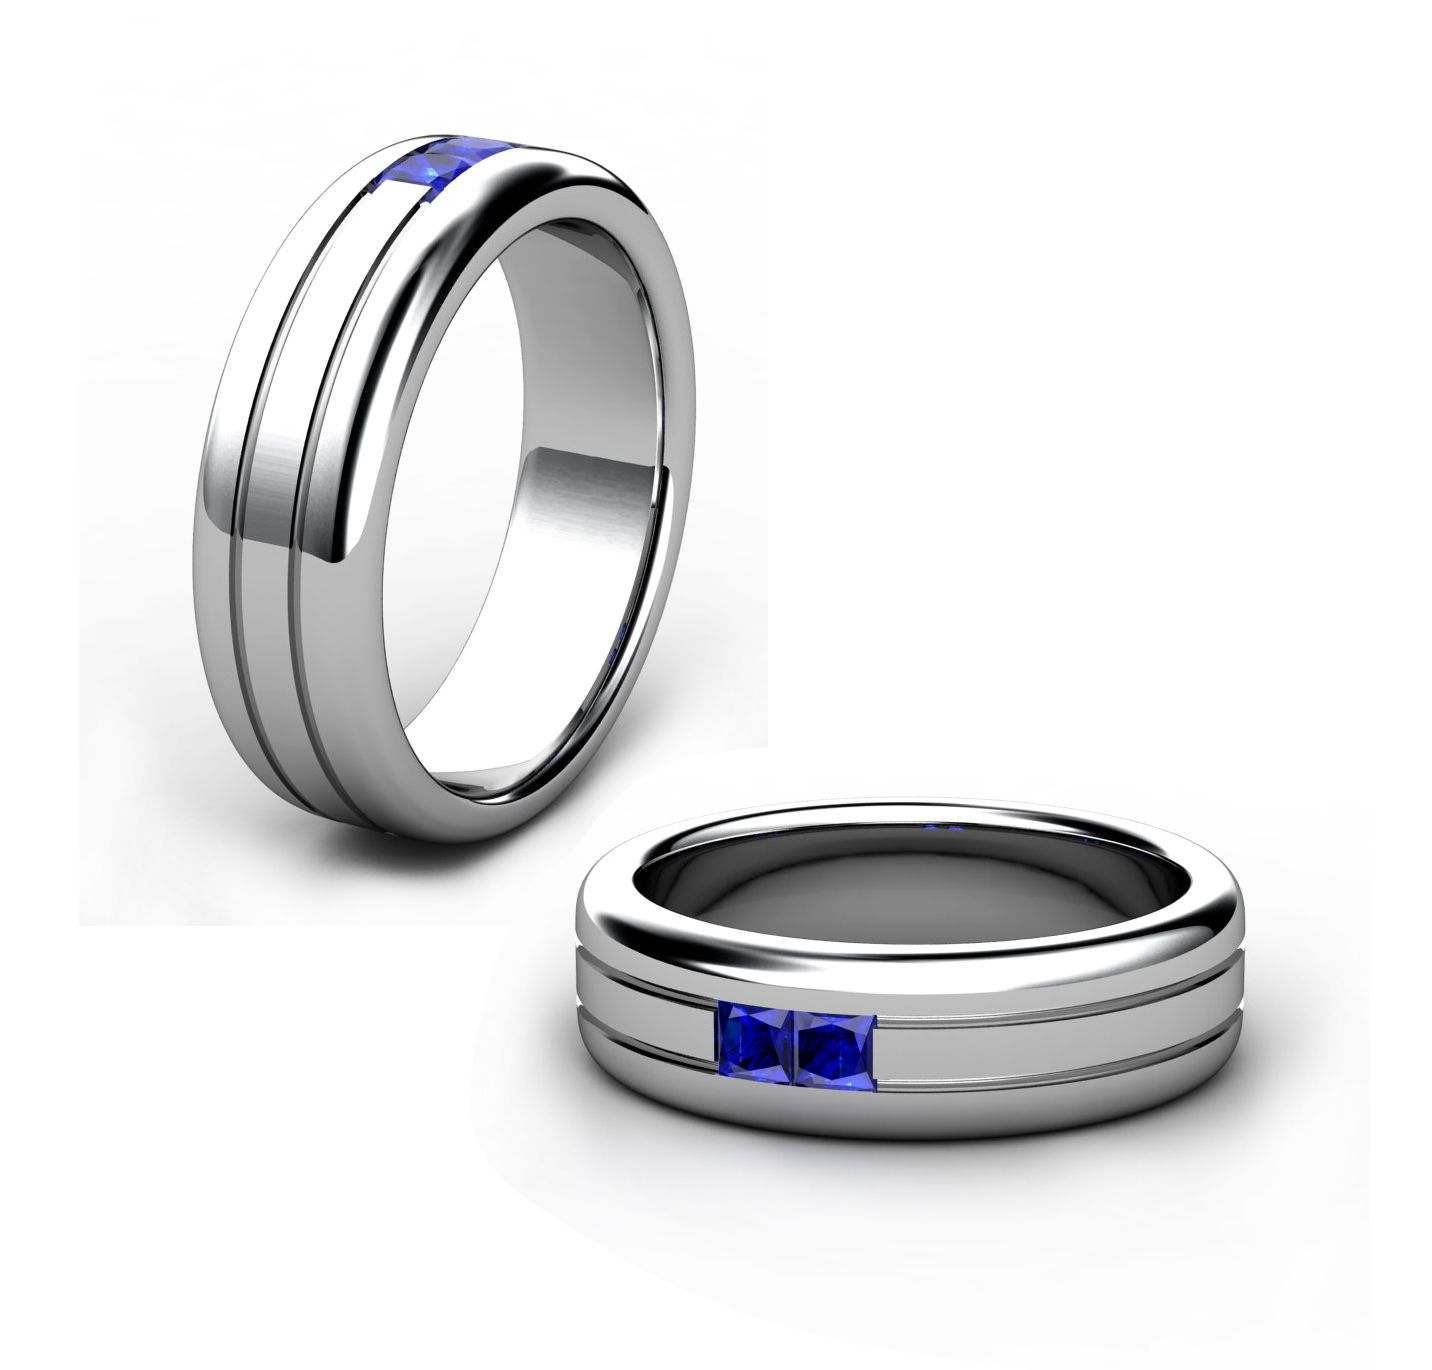 18 Ct white gold gents wedding ring with 2 x princess cut royal blue